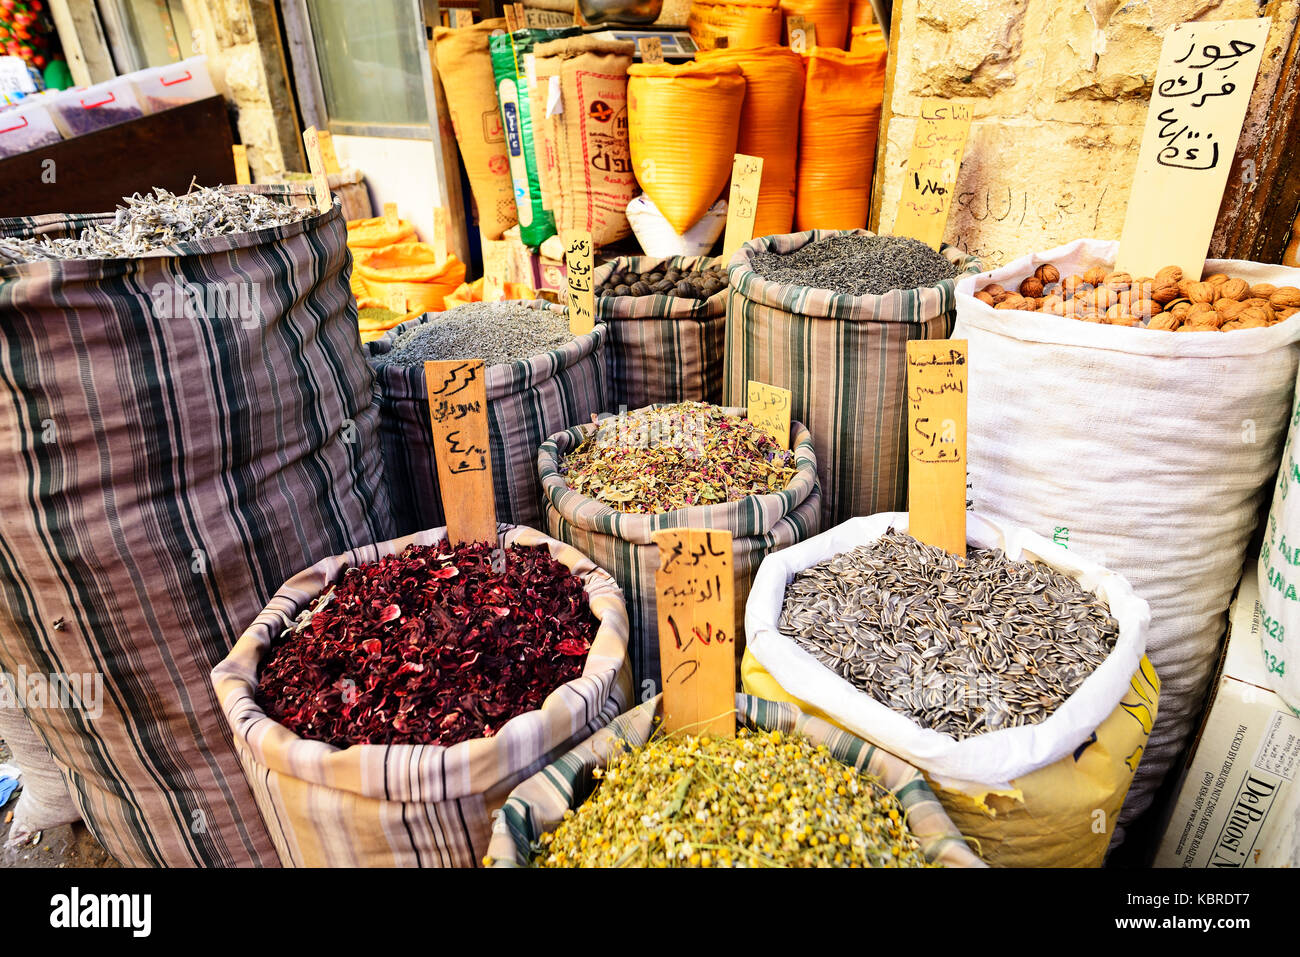 Spices at market, Amman, Jordan - Stock Image